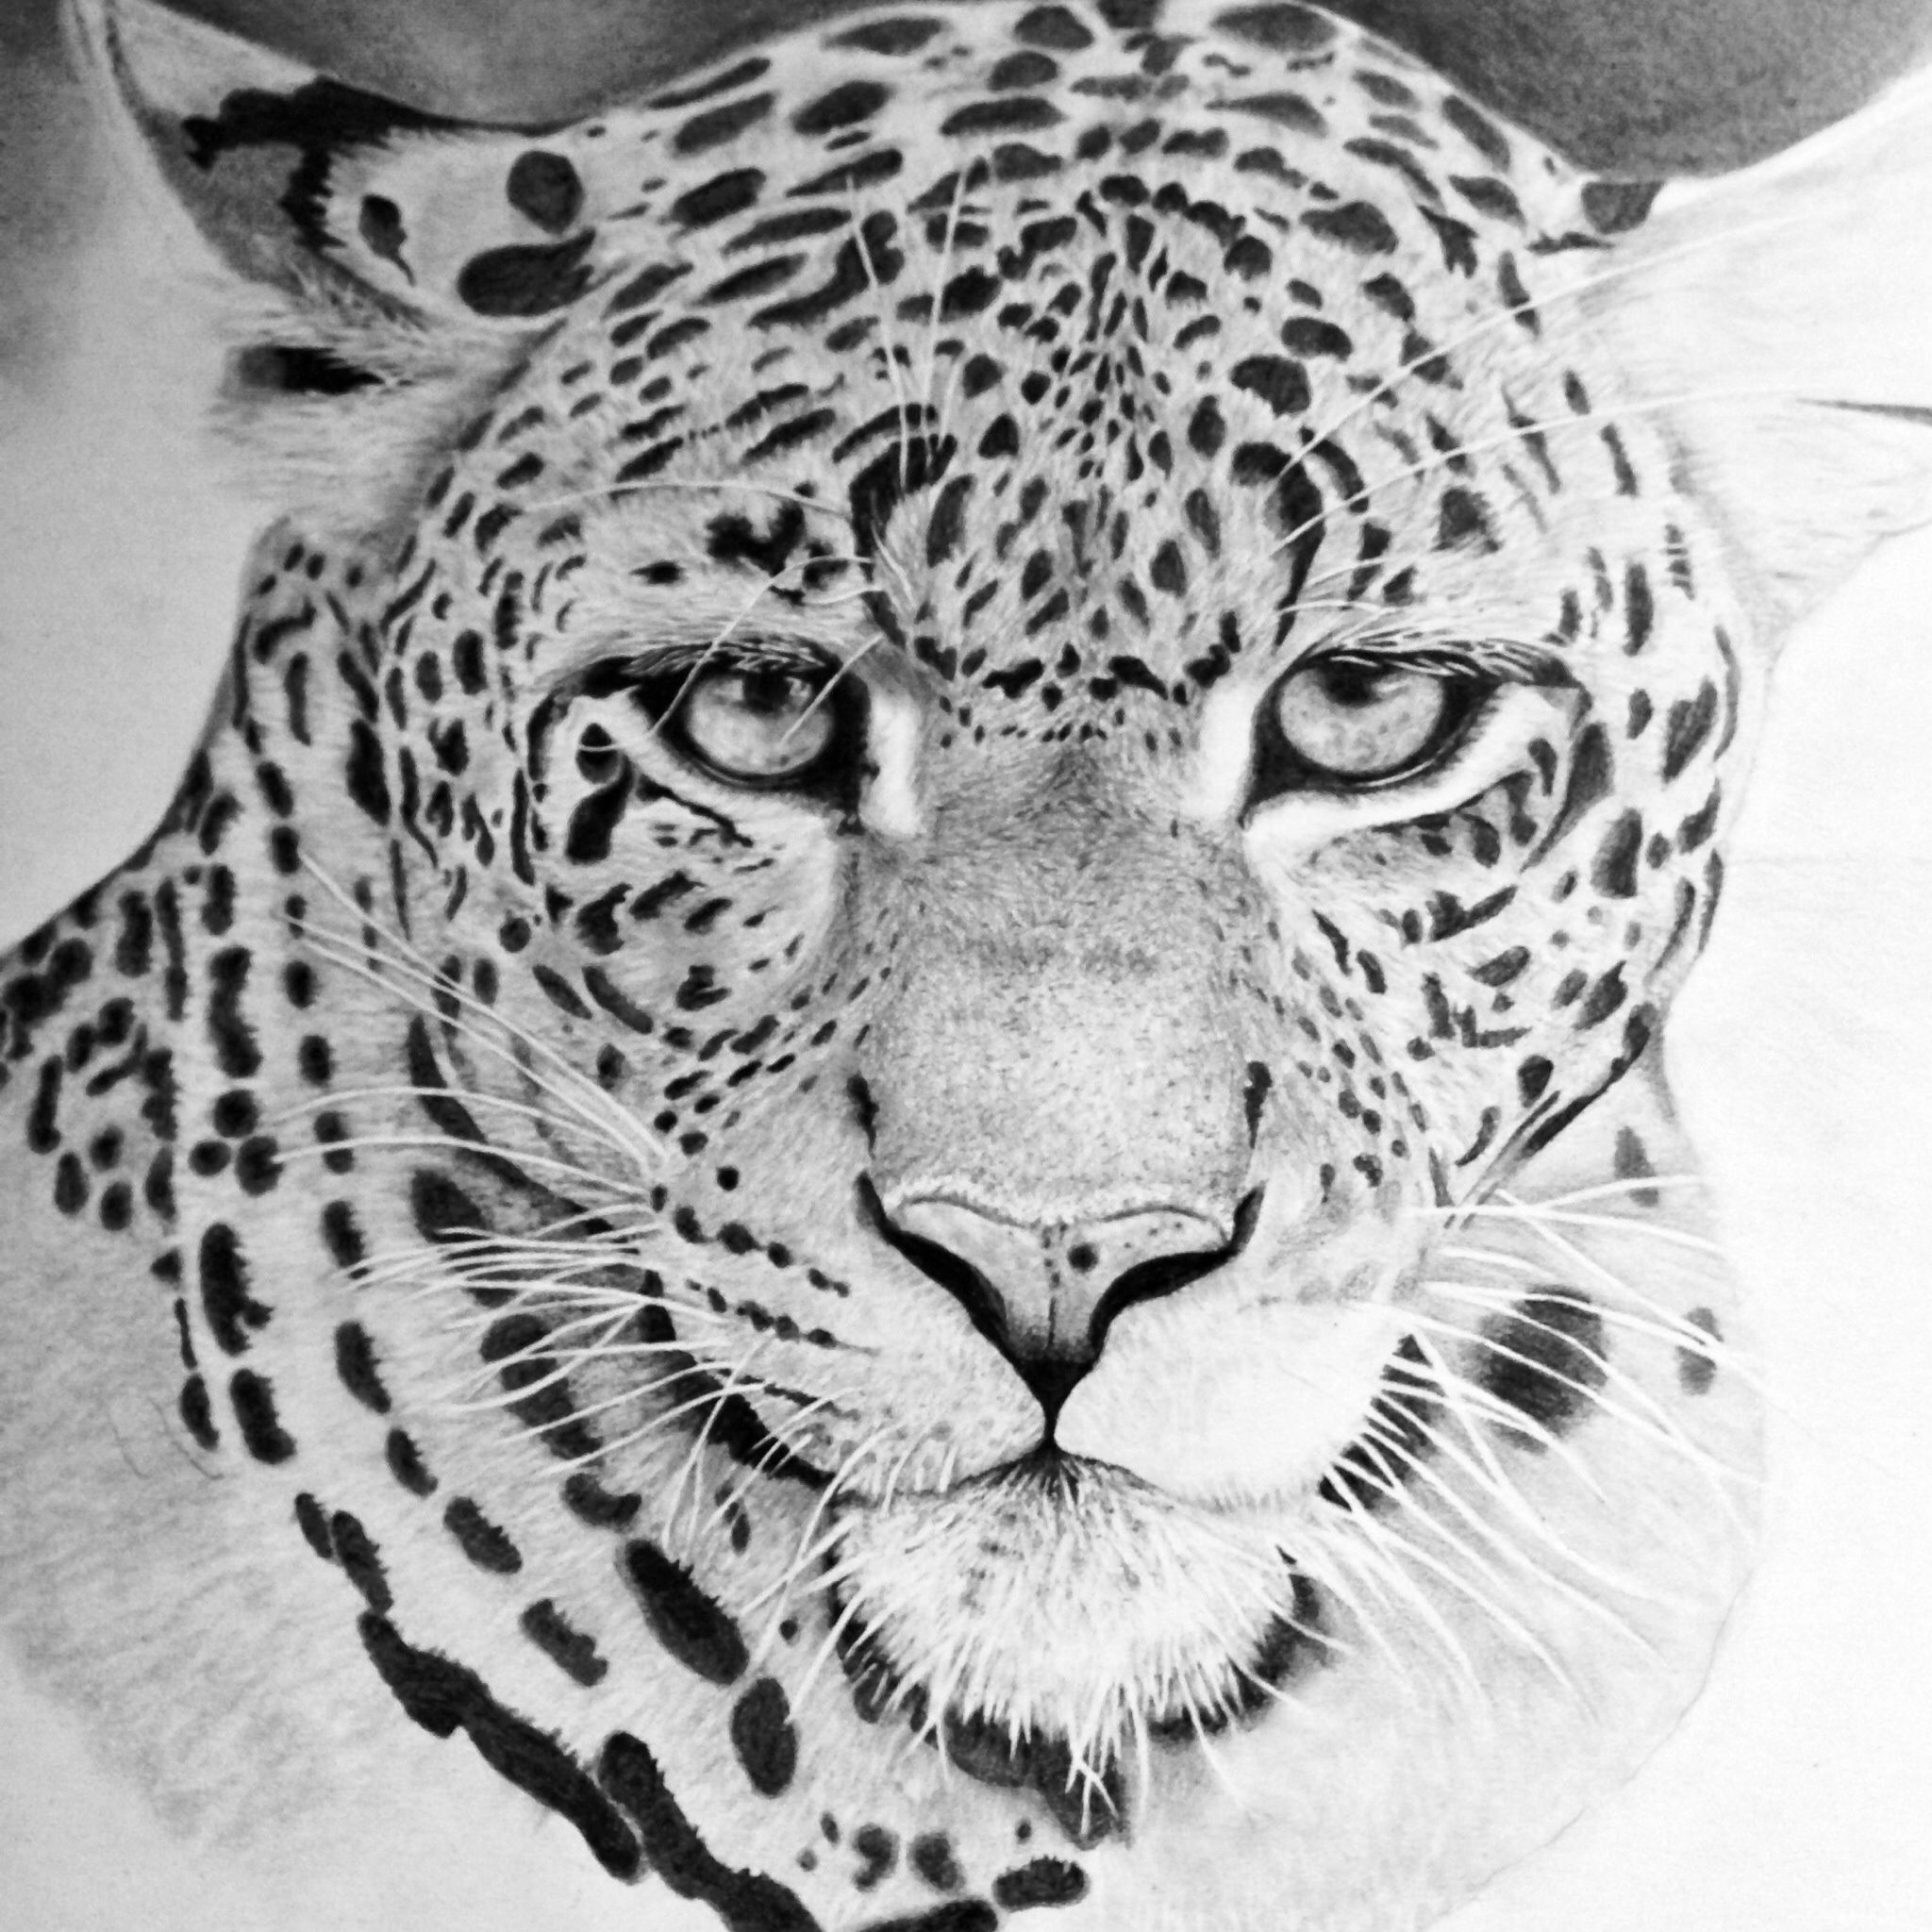 Hyper Realistic Animal Drawing By Gallerydeceylon On